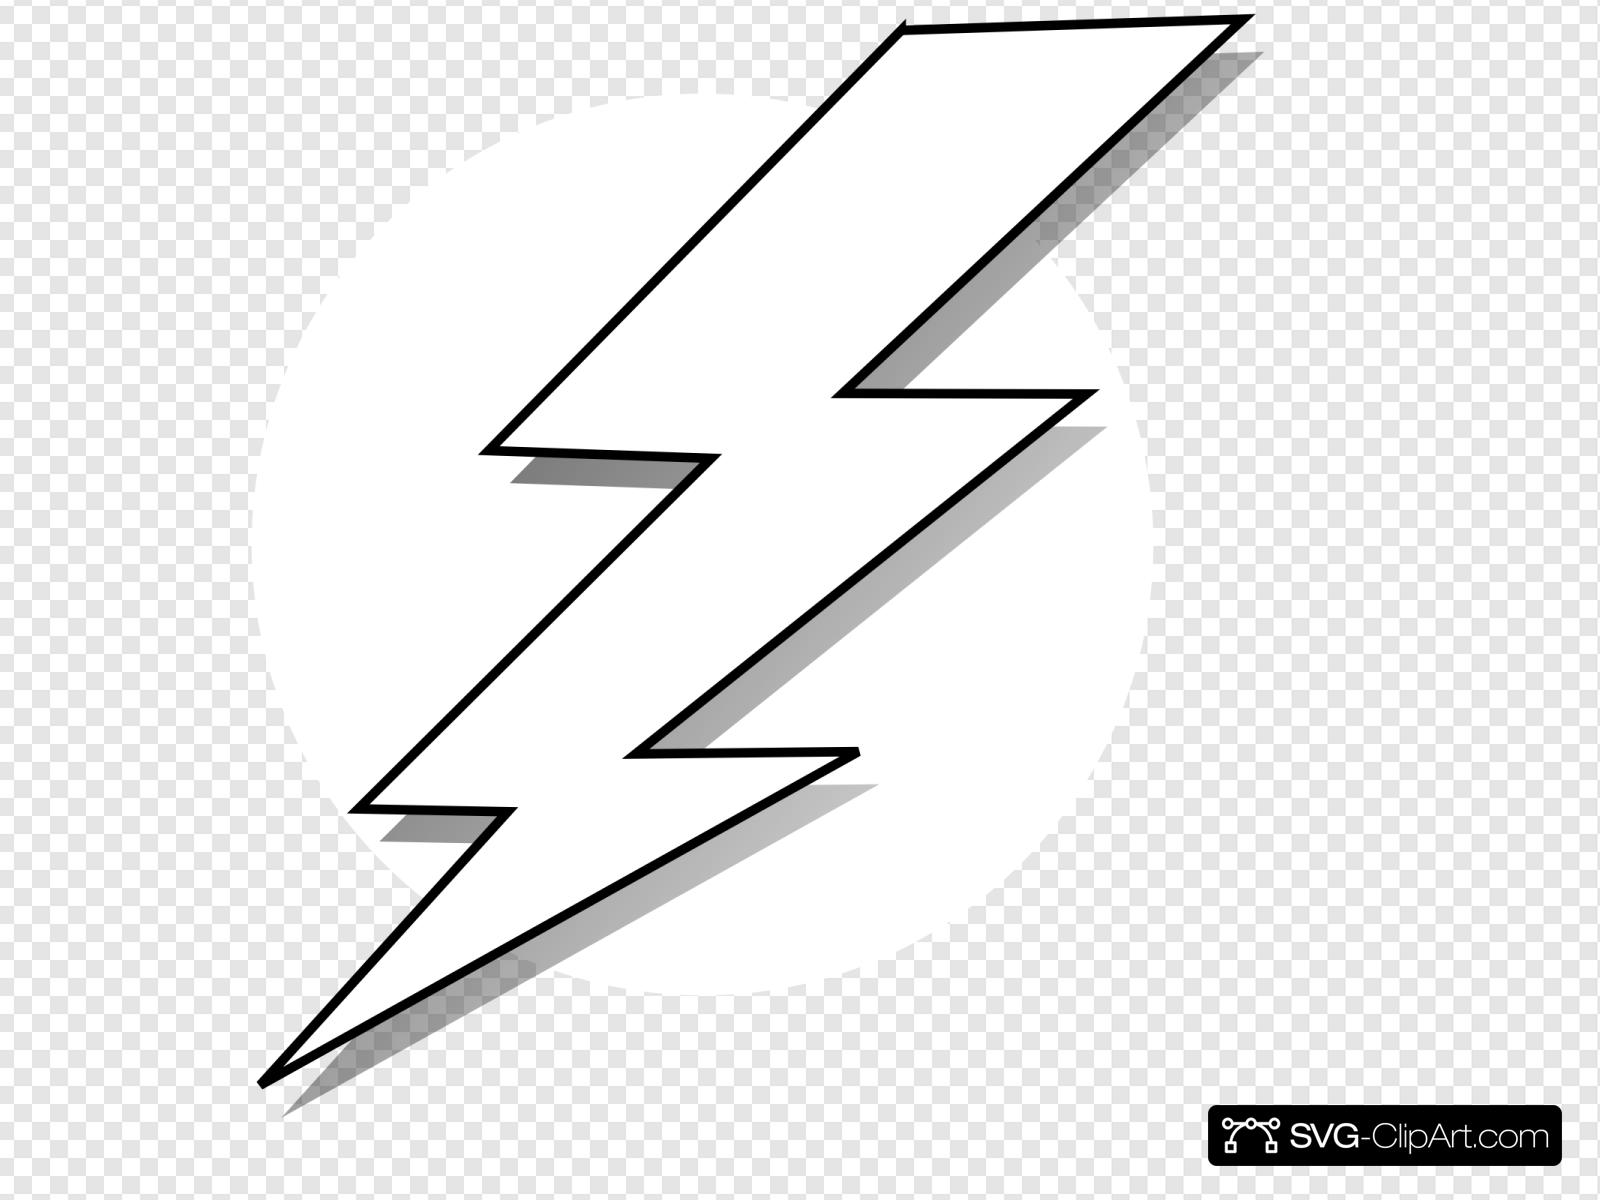 Black And White Lightning Bolt Clip art, Icon and SVG.